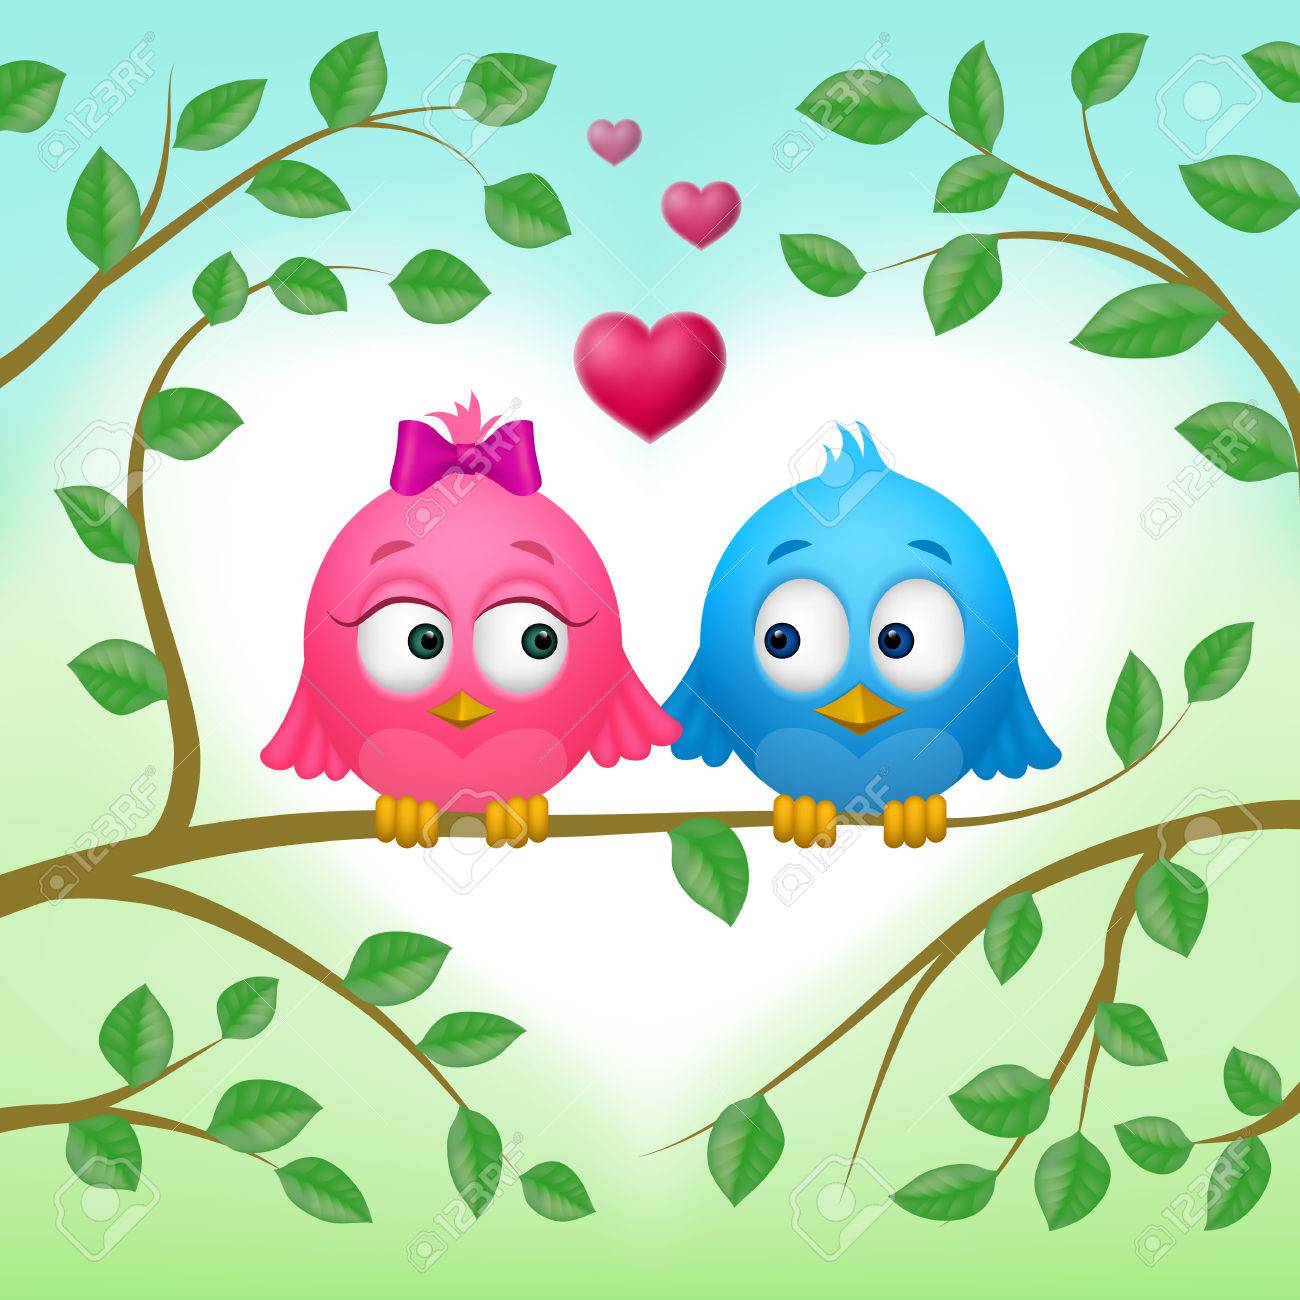 Couple Of Two Cute Birds In Love On Branch Royalty Free Cliparts Vectors And Stock Illustration Image 70029421